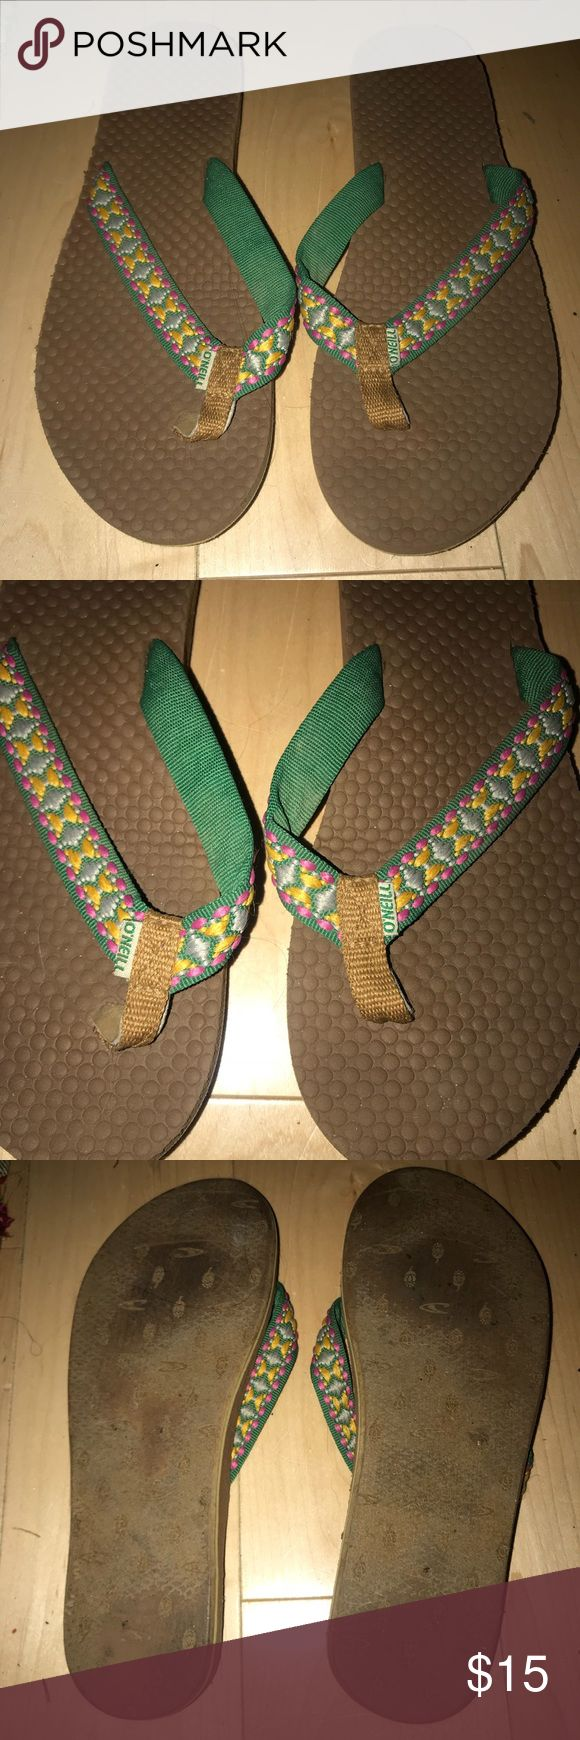 Reef multicolor sandals size 8 Reef multicolor sandals size 8  Worn once or twice maybe just in storage . Super comfy Reef Shoes Sandals